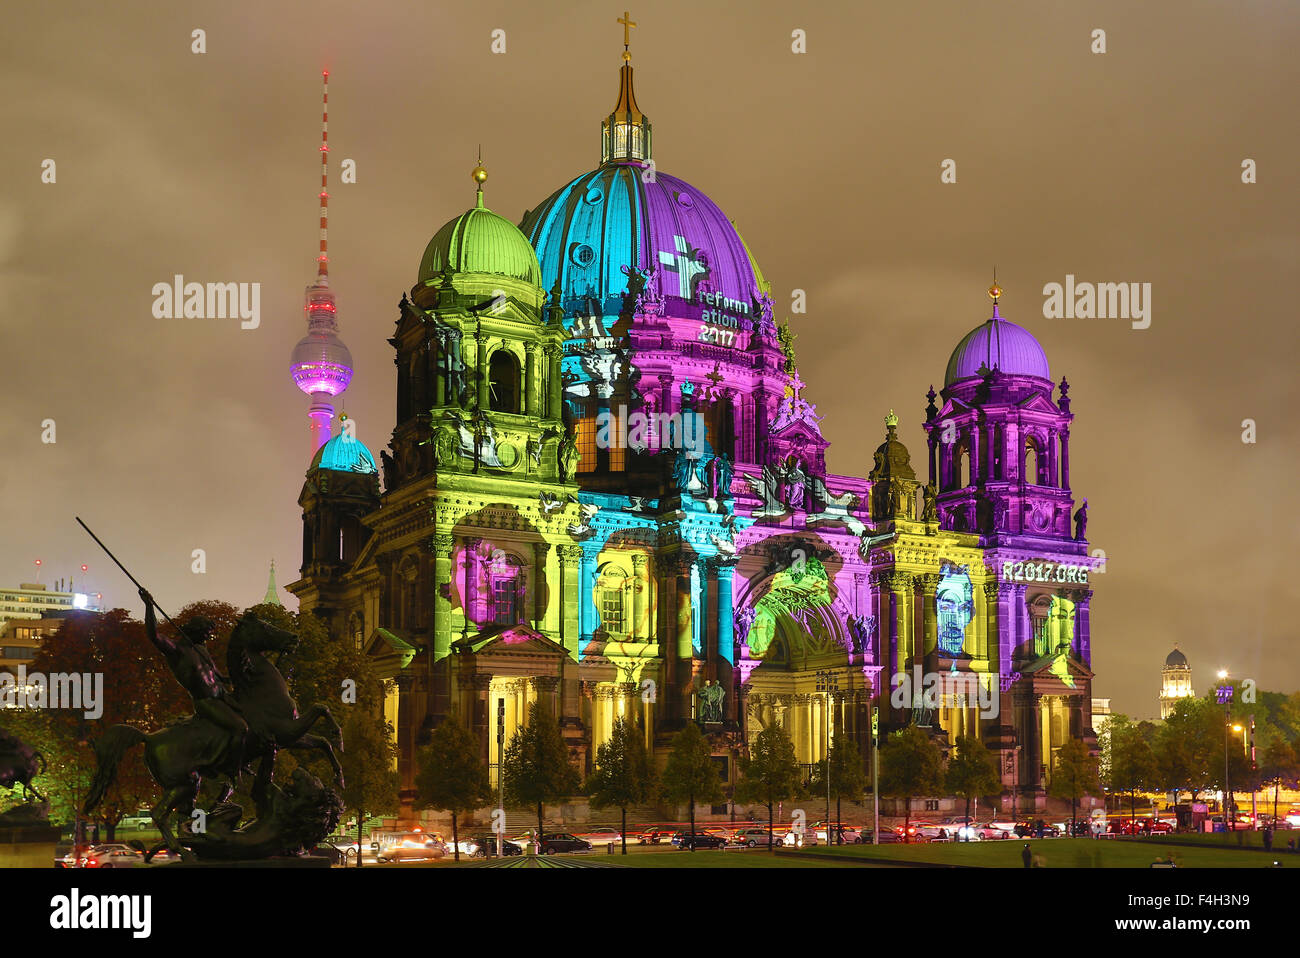 Festival of Lights, Berliner Dom - Stock Image